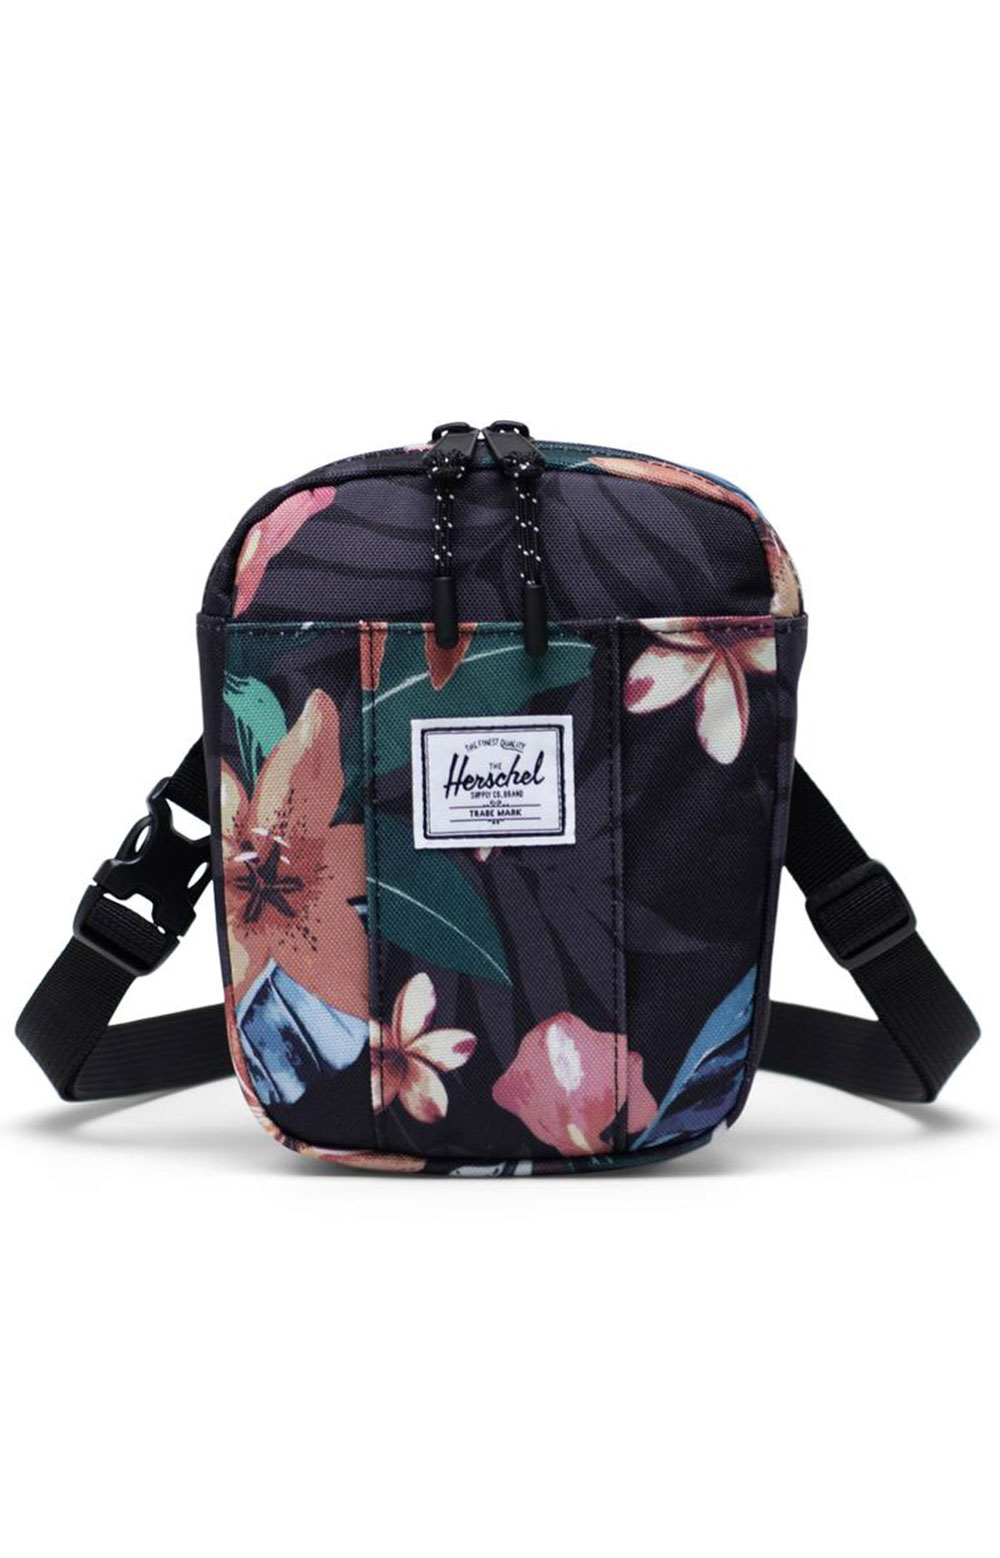 Cruz Crossbody Bag - Summer Floral Black